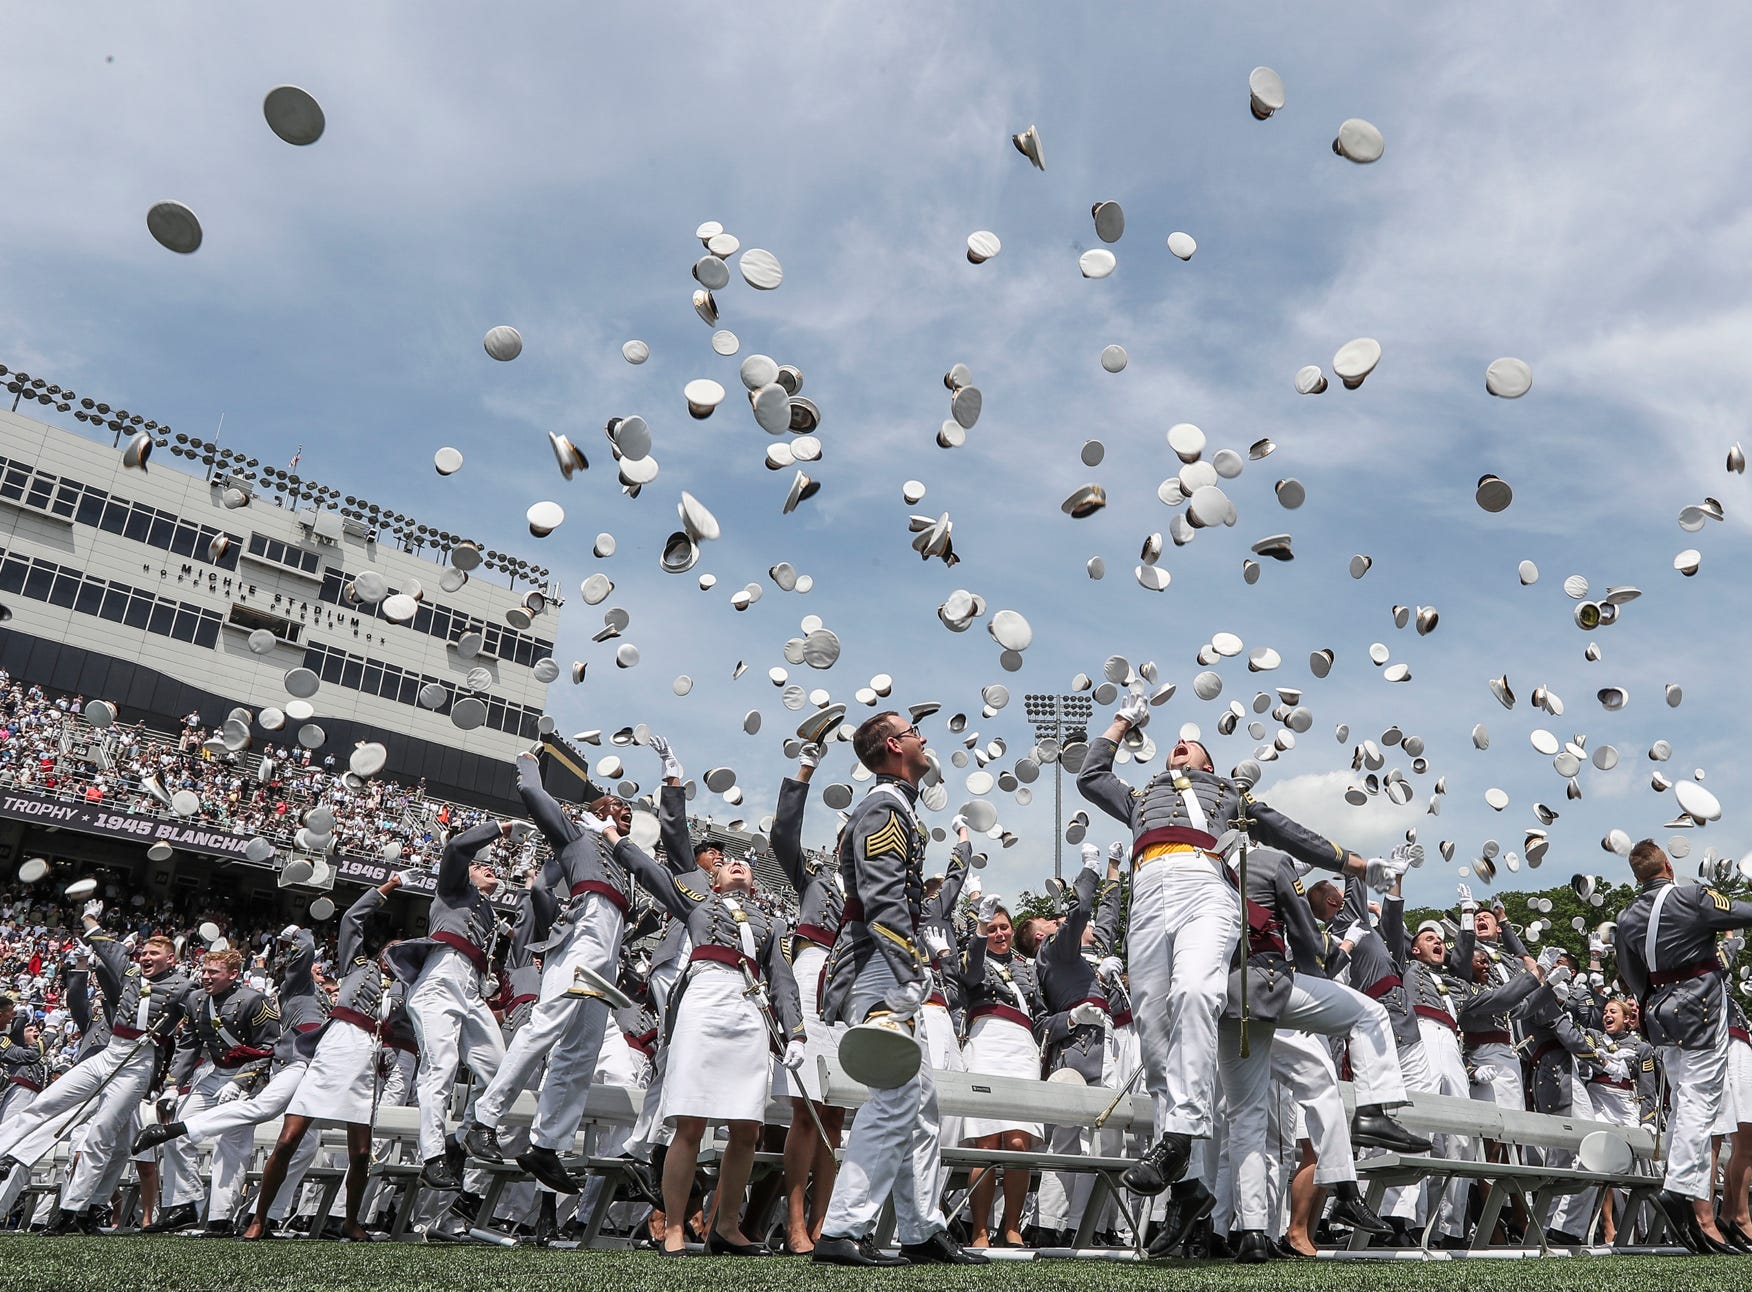 Cadets toss their covers after the 220th graduation and commissioning ceremony at U.S. Military Academy at West Point on Saturday, May 26, 2018.